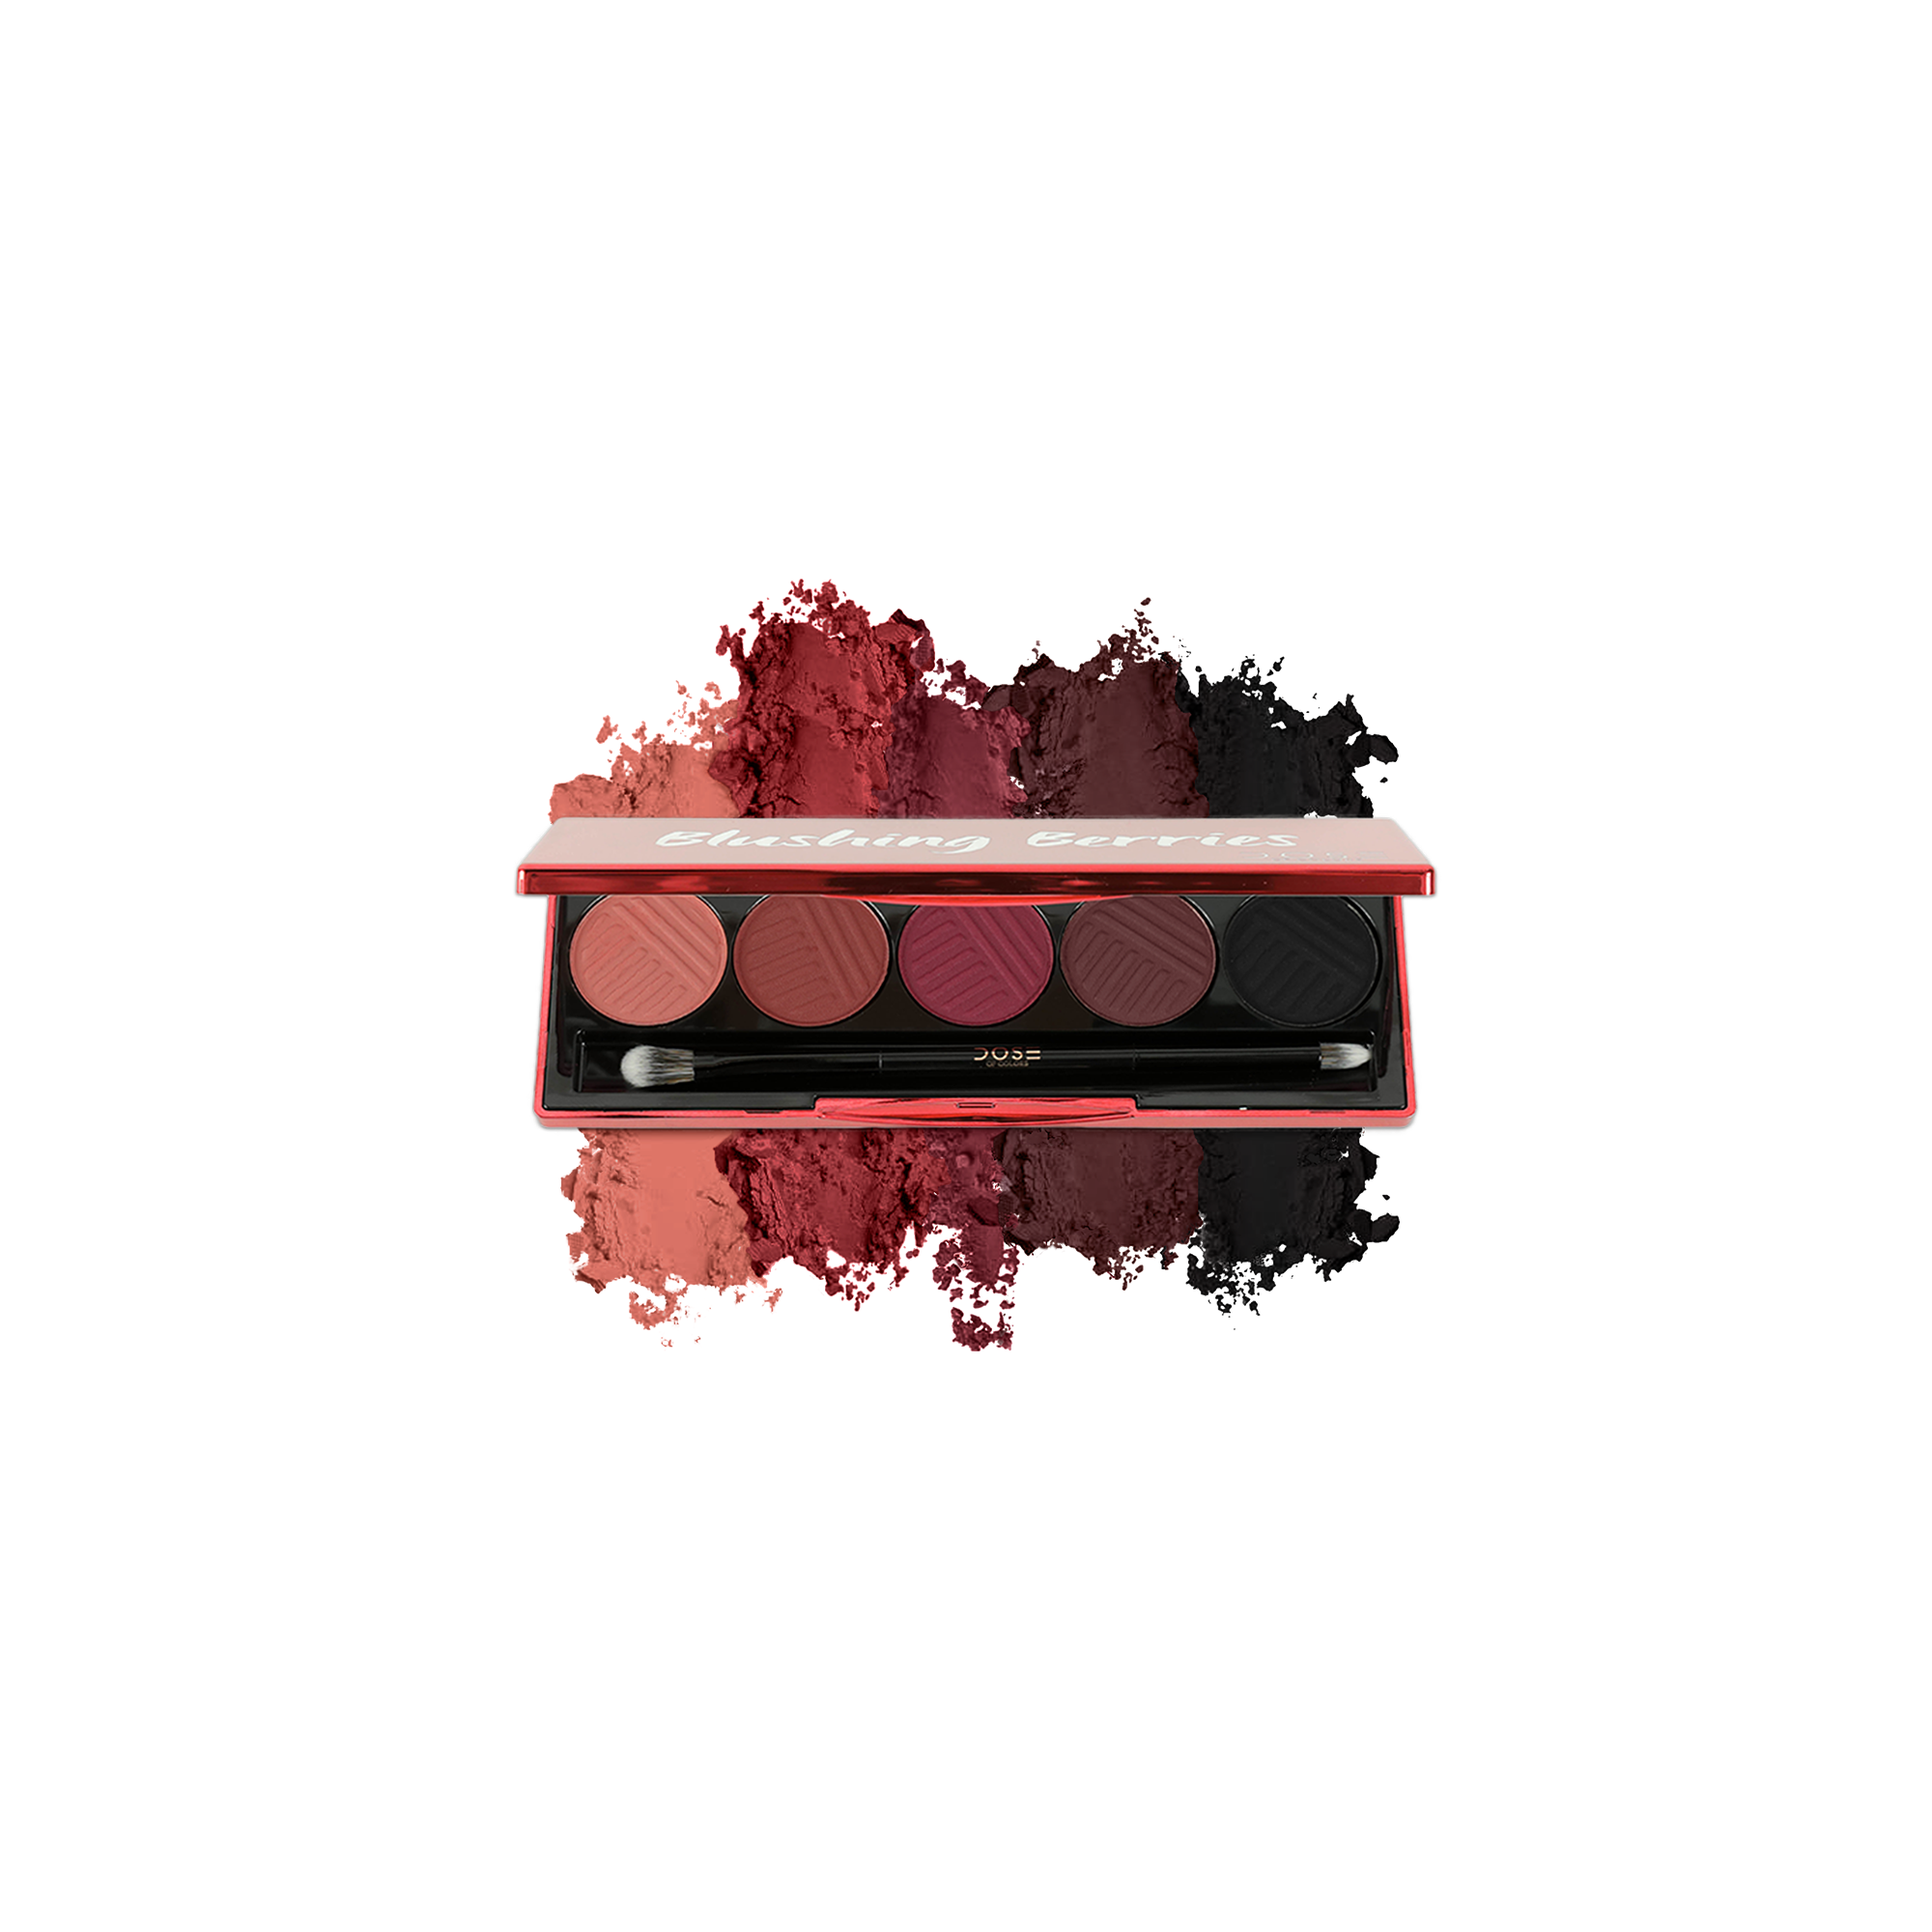 Dose Of Colors Blushing Berries Eyeshadow Palette